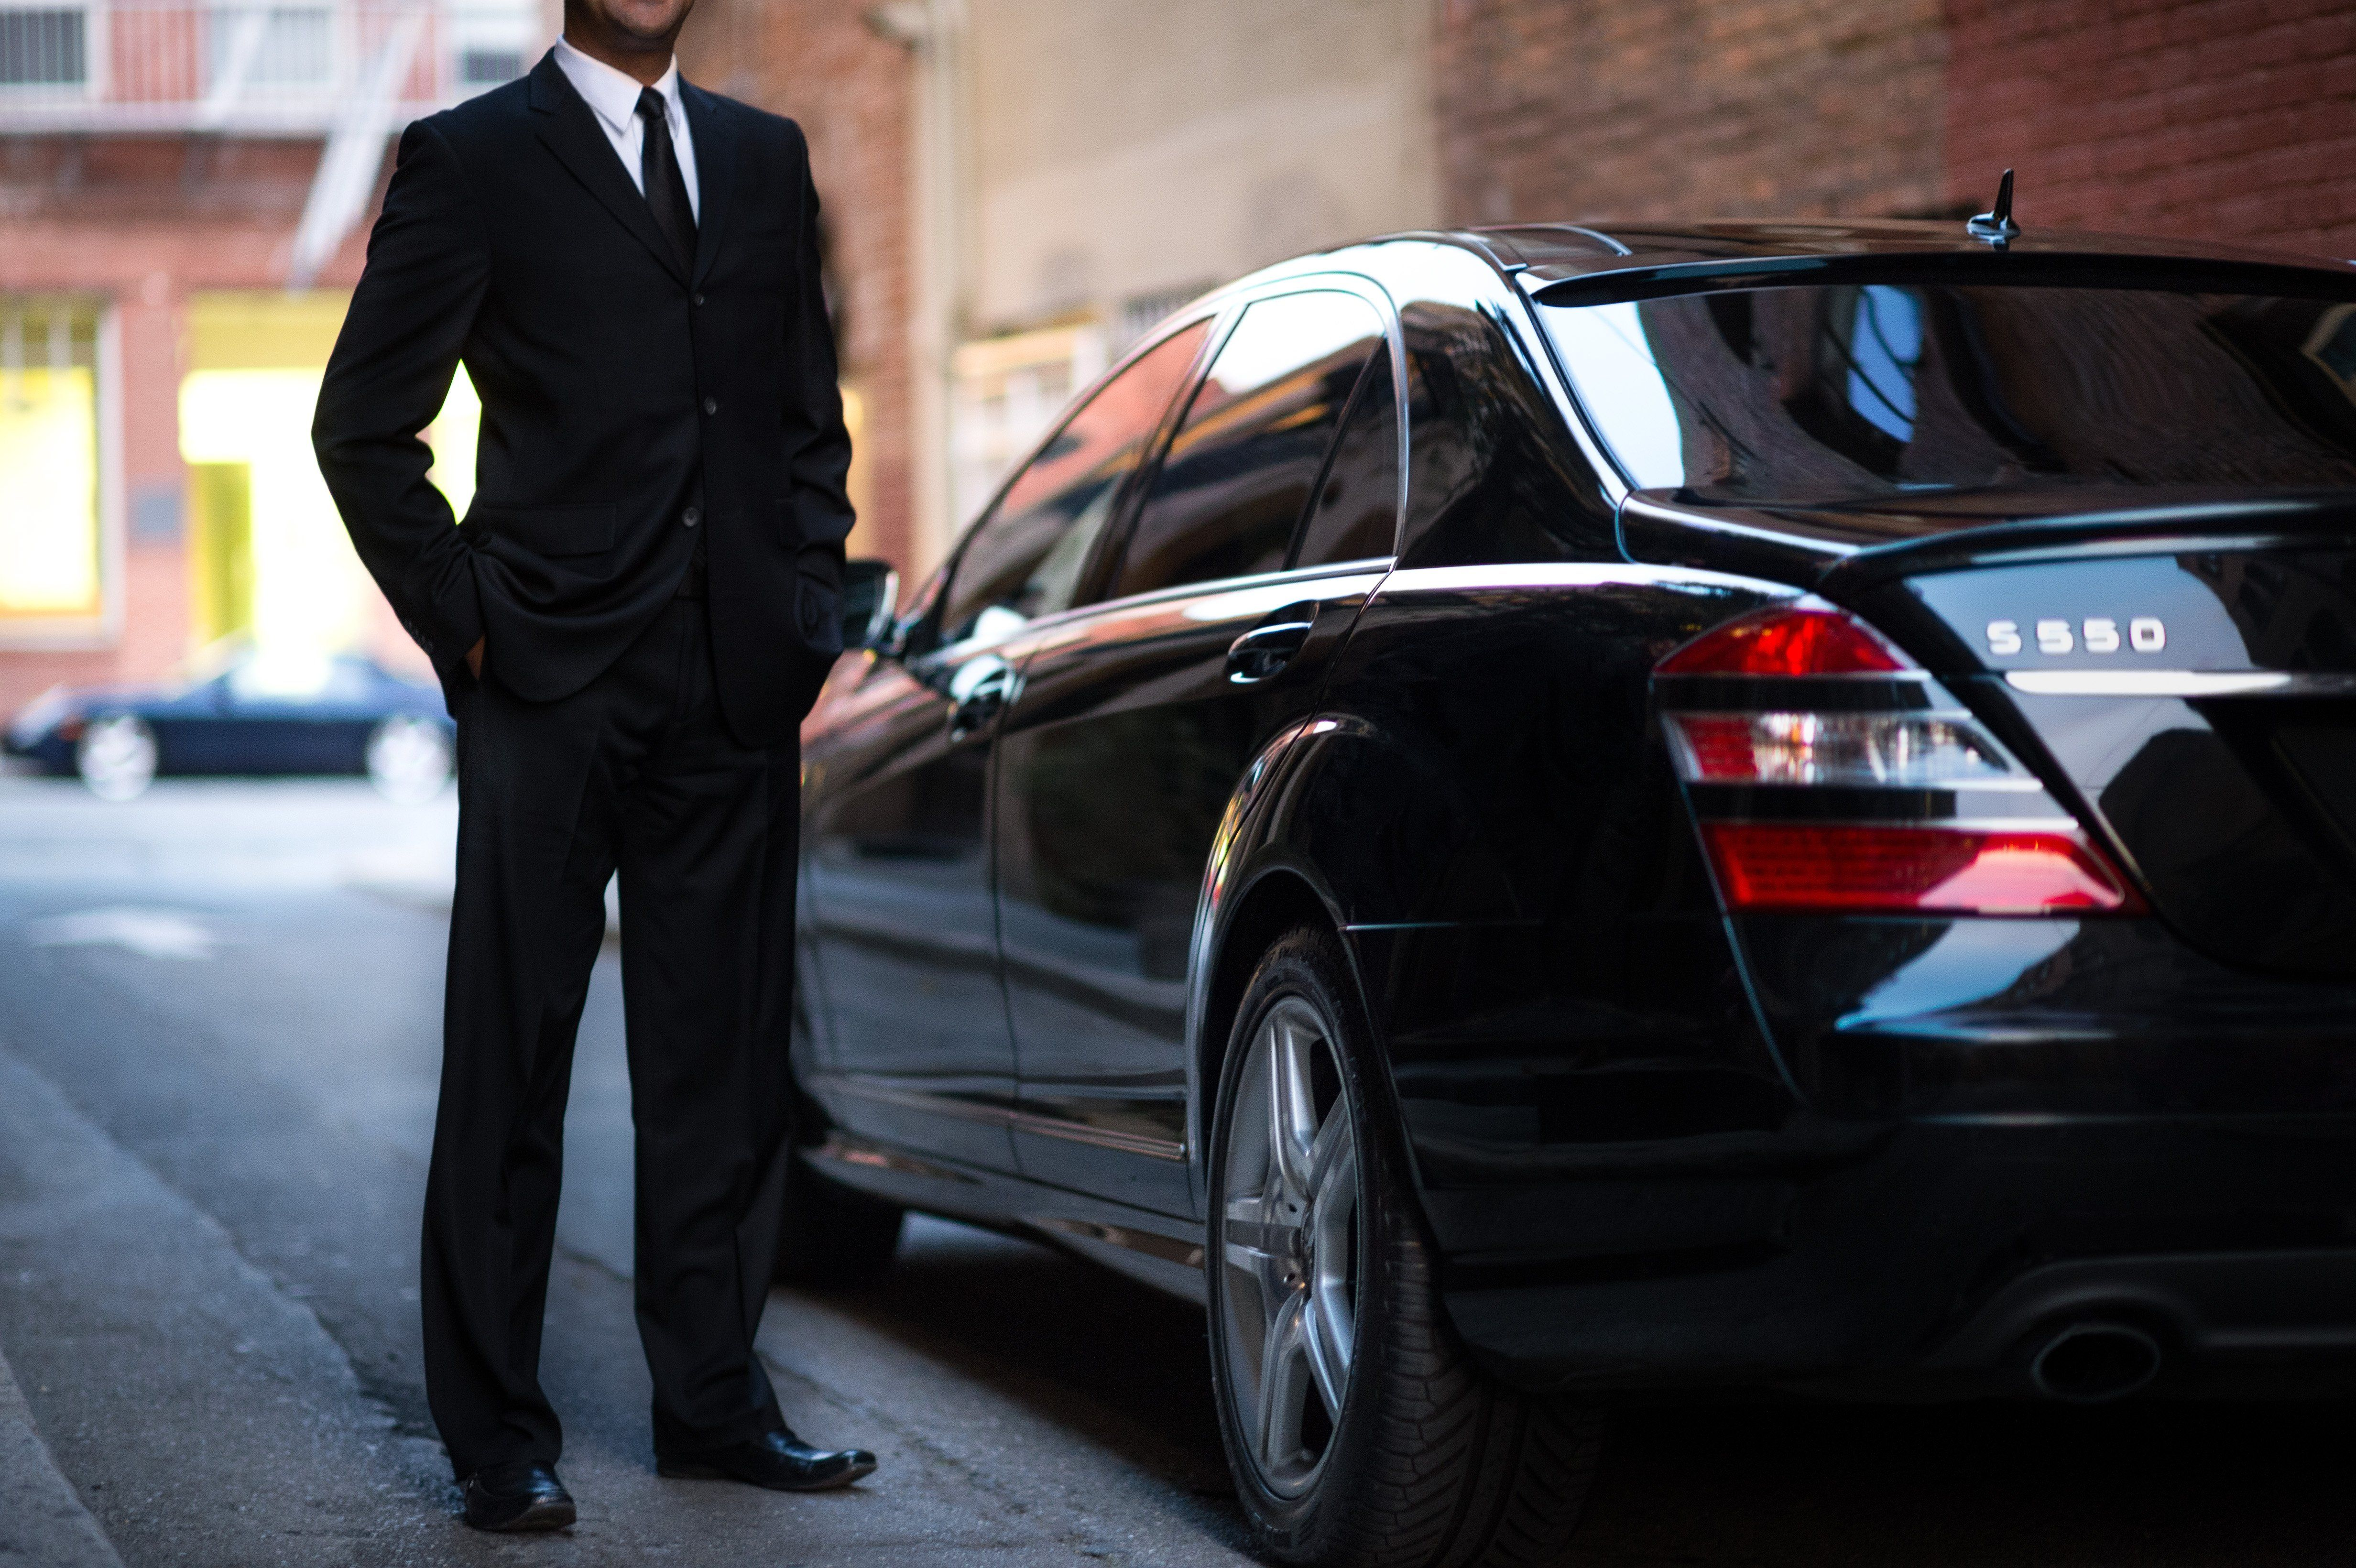 Uber Hired A Convicted Murderer Who Applied With A Fake Name Complaint Claims Town Car Service Airport Car Service Chauffeur Service